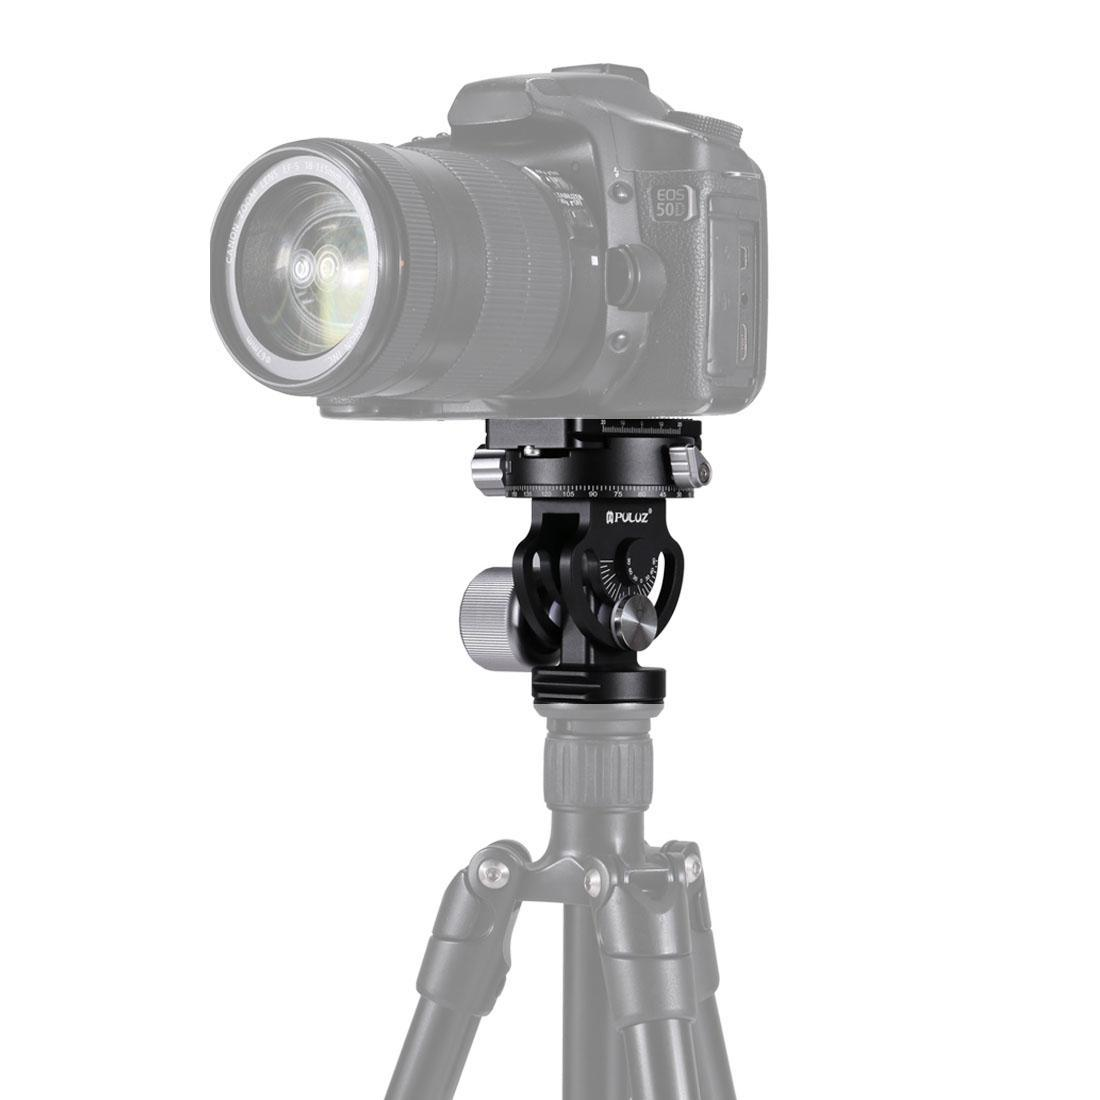 PULUZ 2-Way Pan/Tilt Tripod Head Panoramic Photography Head with Quick Release Plate & 3 Bubble Level